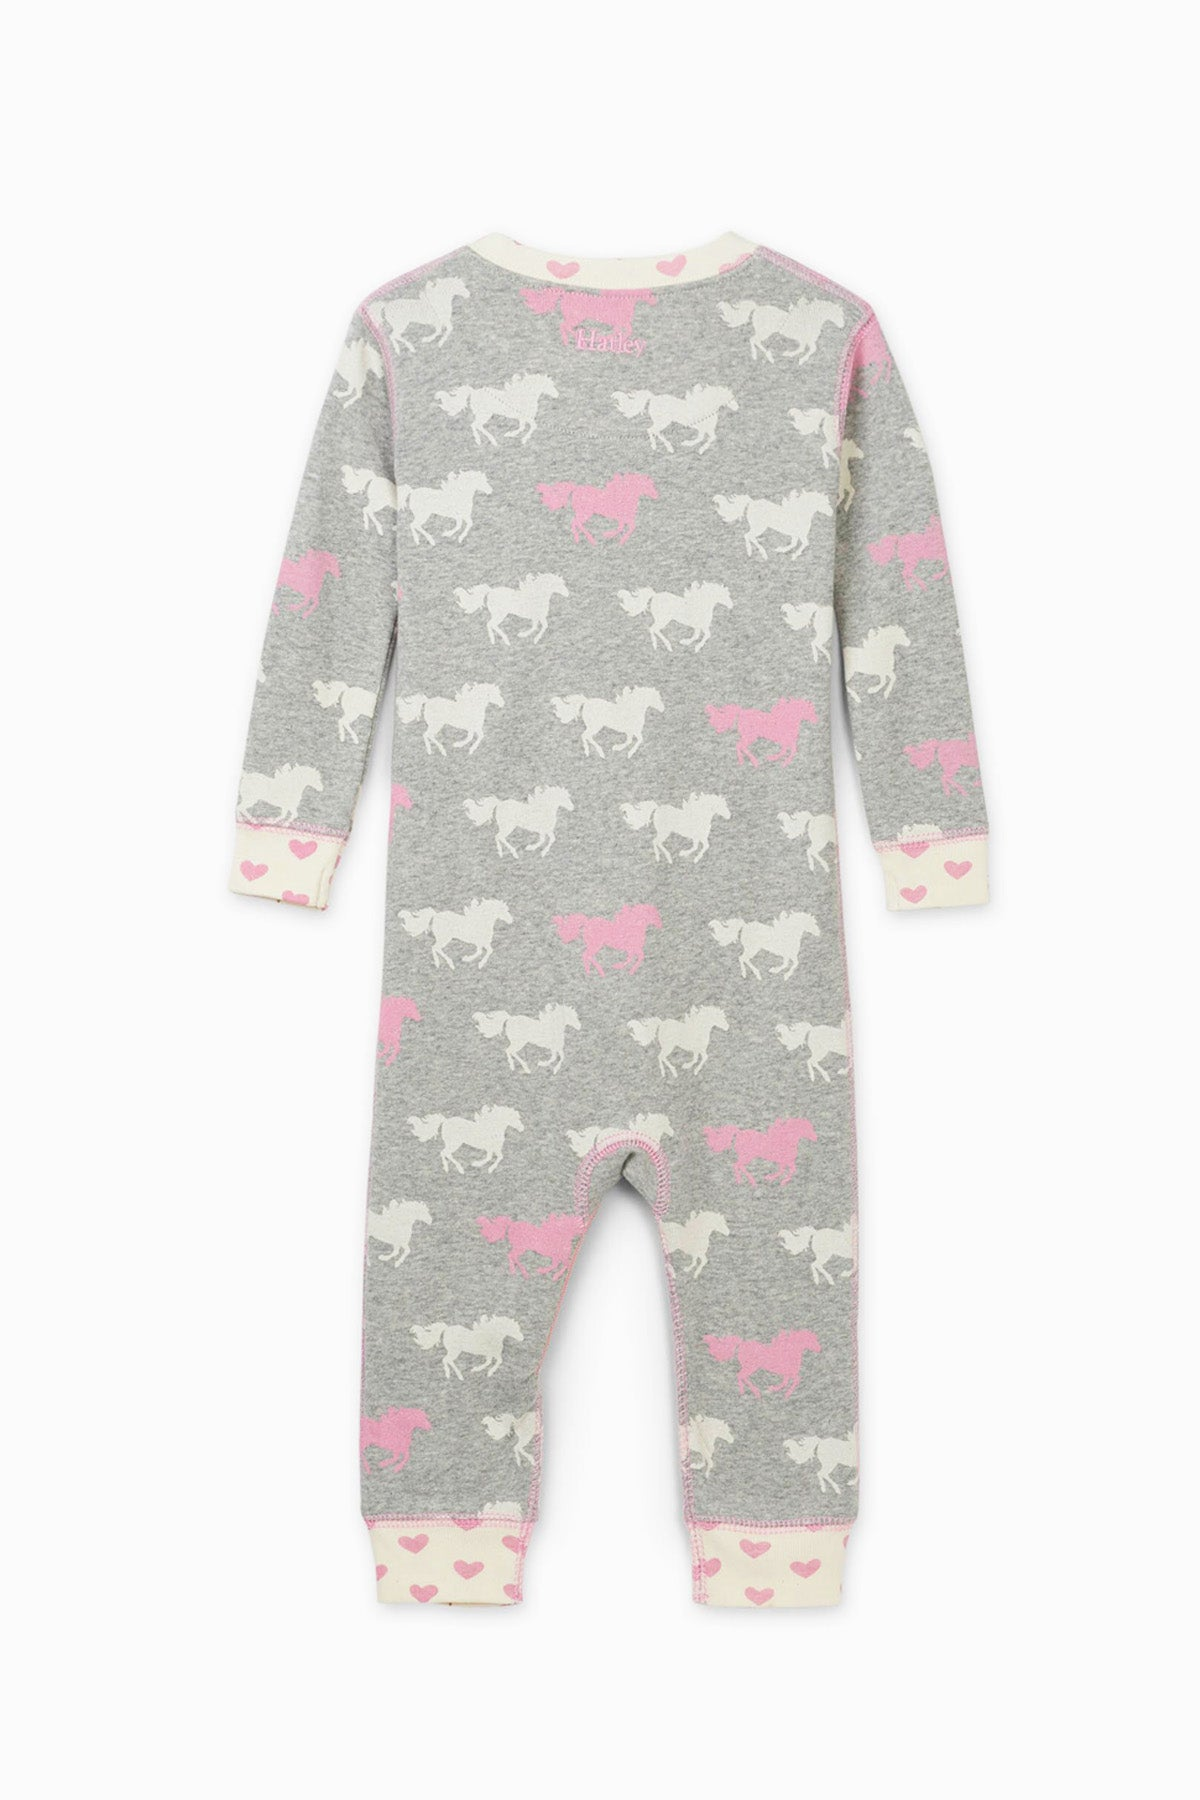 Hatley Pasture Horses Coverall